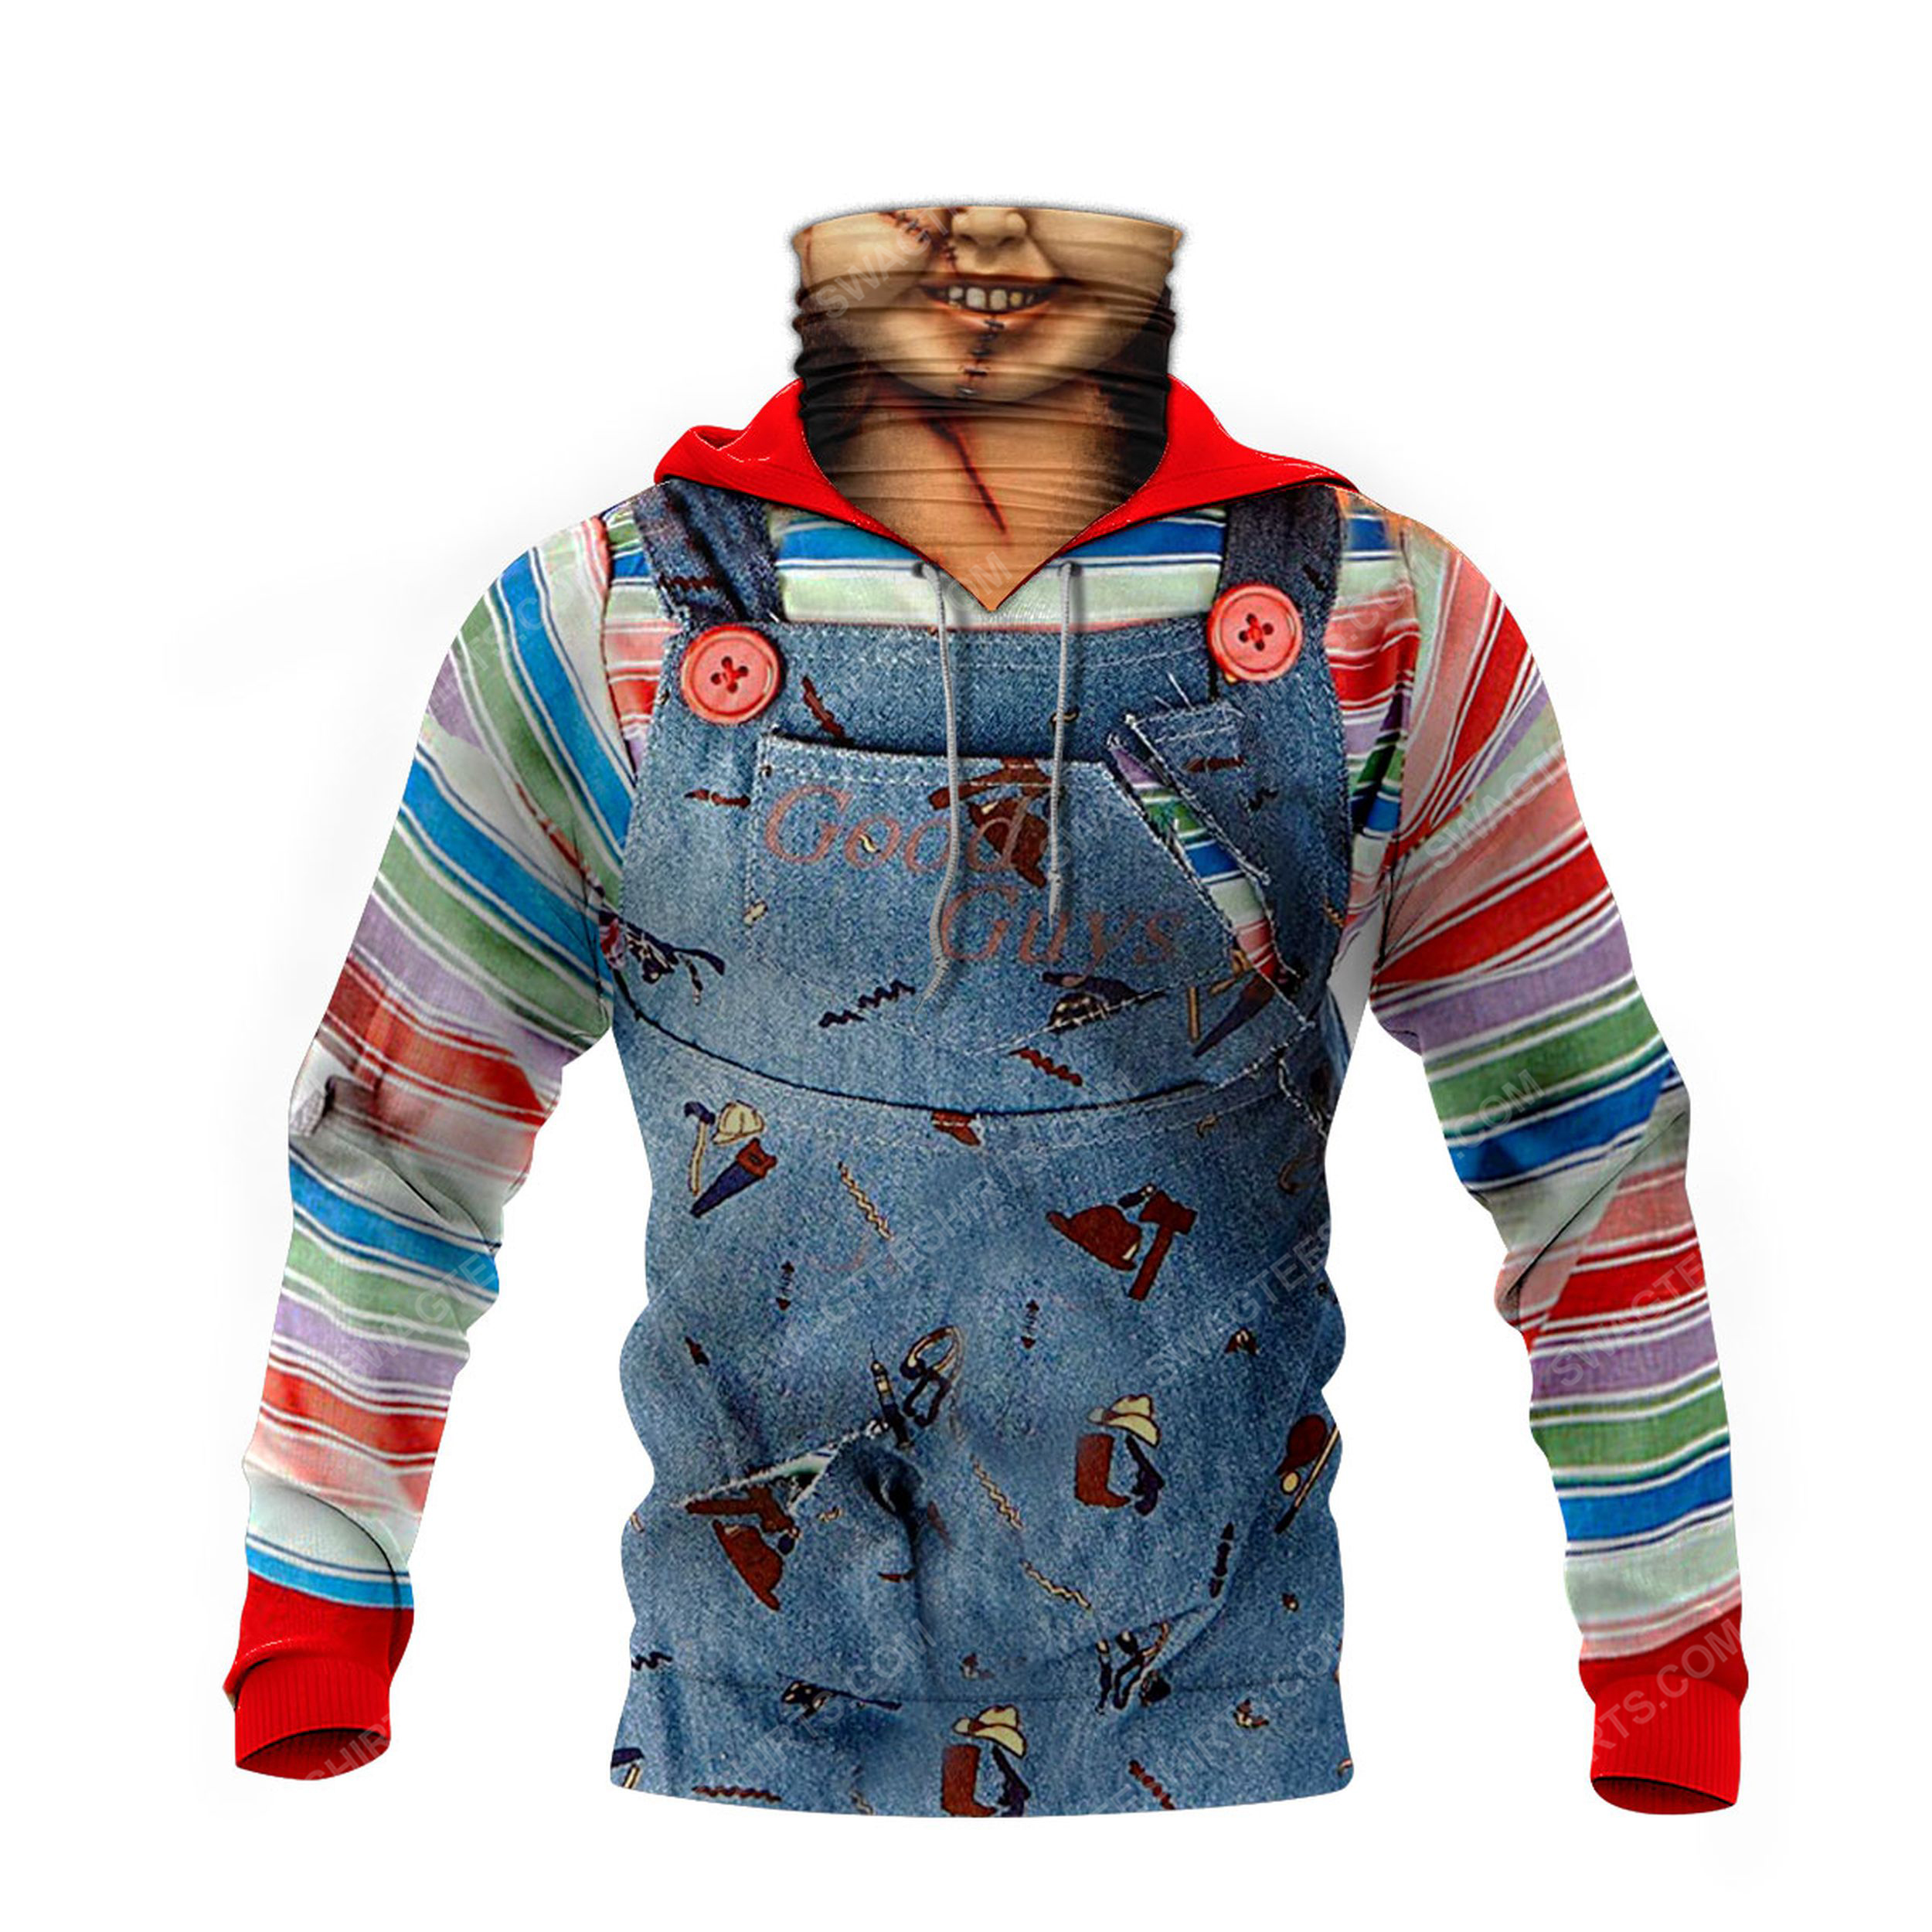 Chucky child's play for halloween full print mask hoodie 4(1)